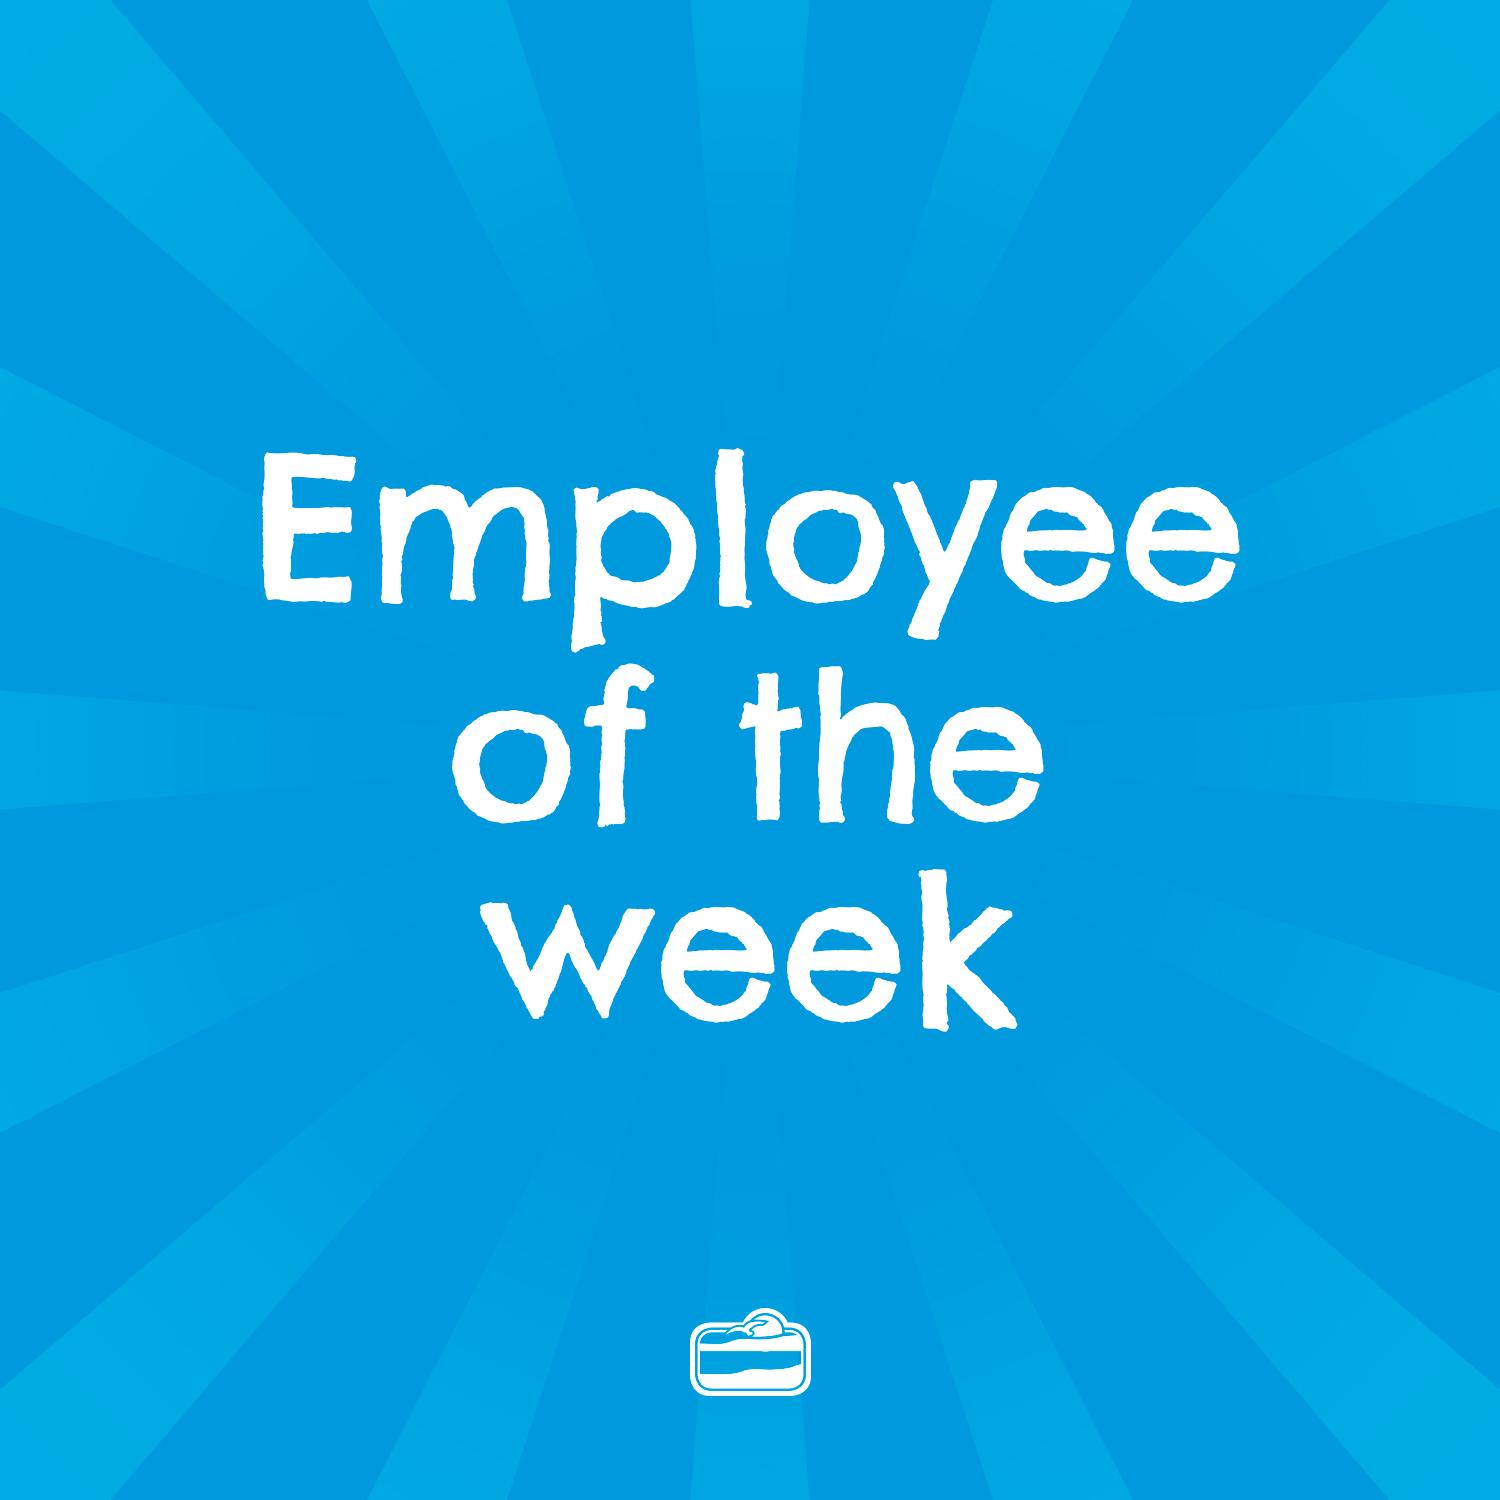 Summer - Employee of the Week